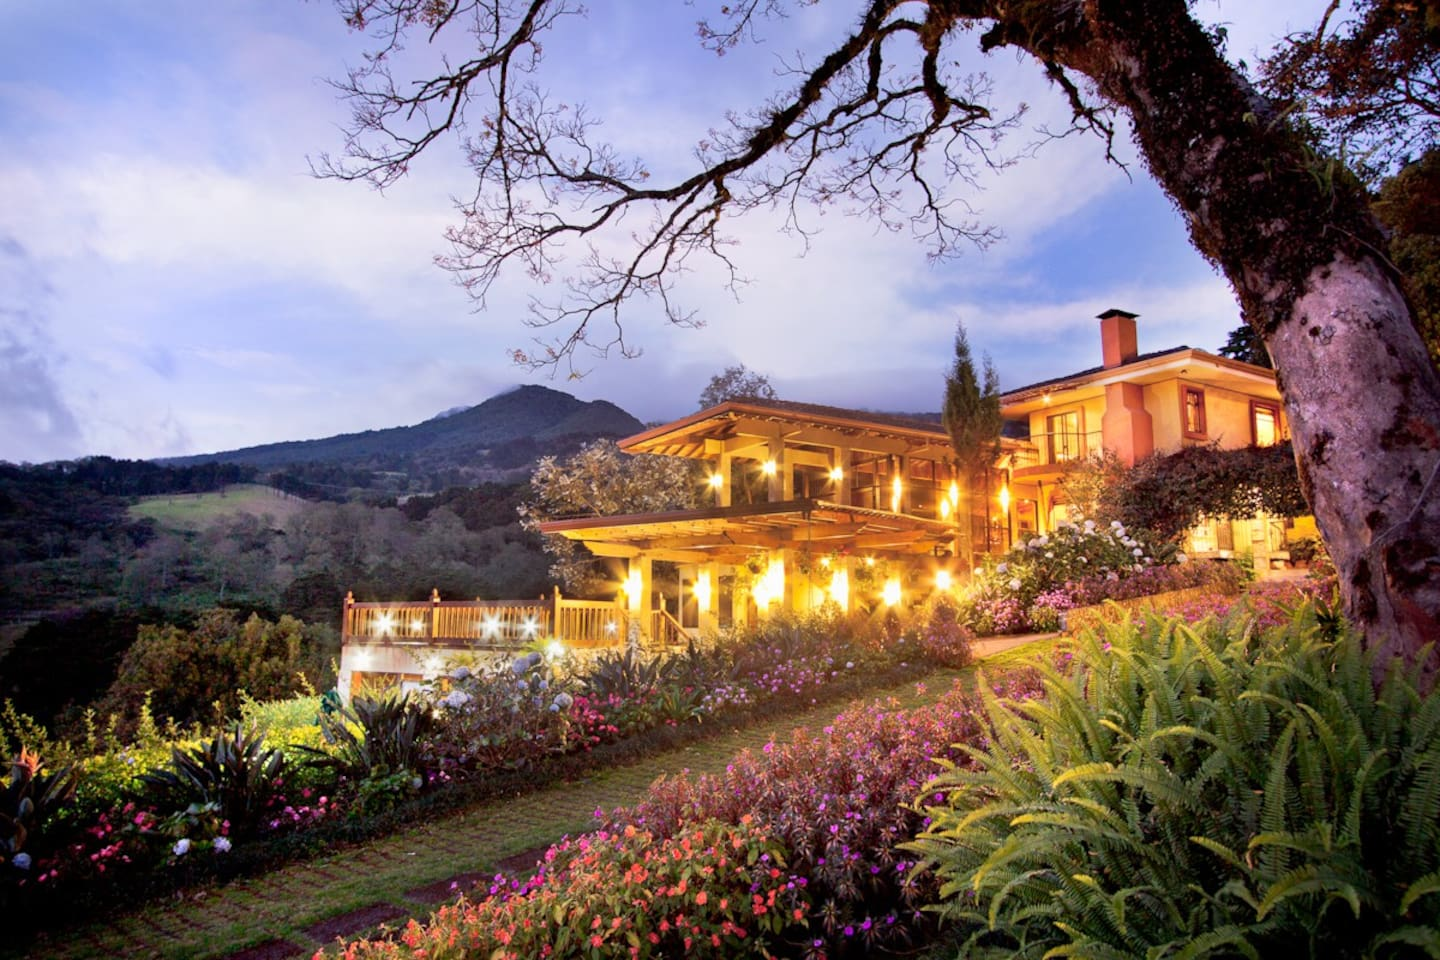 Finca Paraiso Mountain Retreat, a place to relax in fresh mountain air